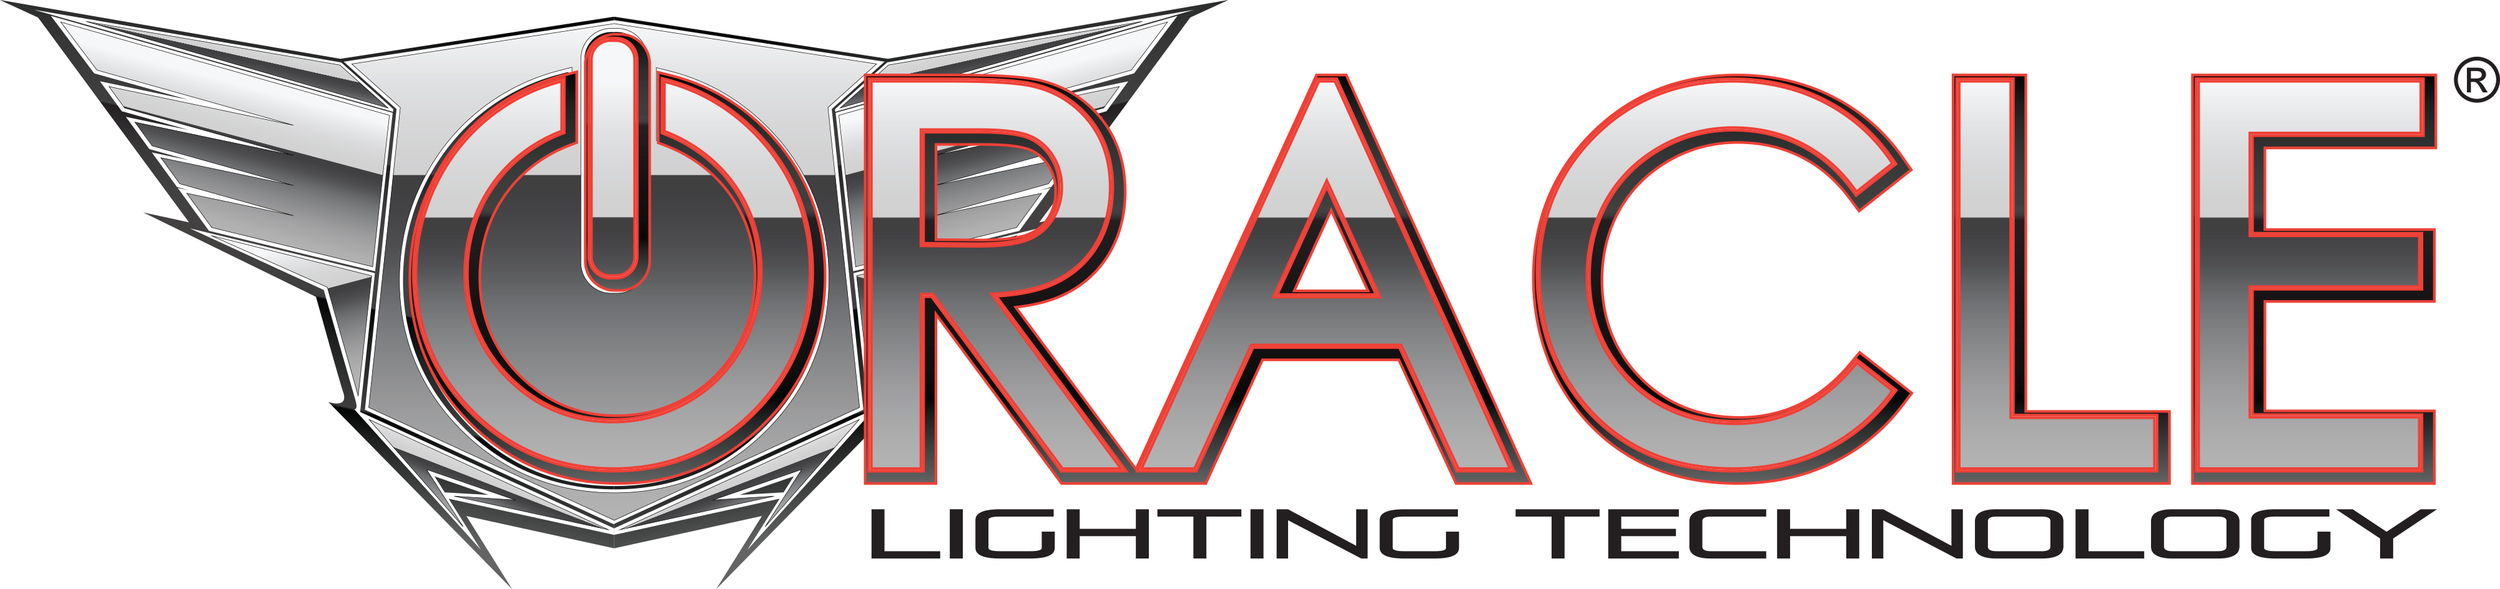 oracle_lighting_logo-gls_winged.jpg